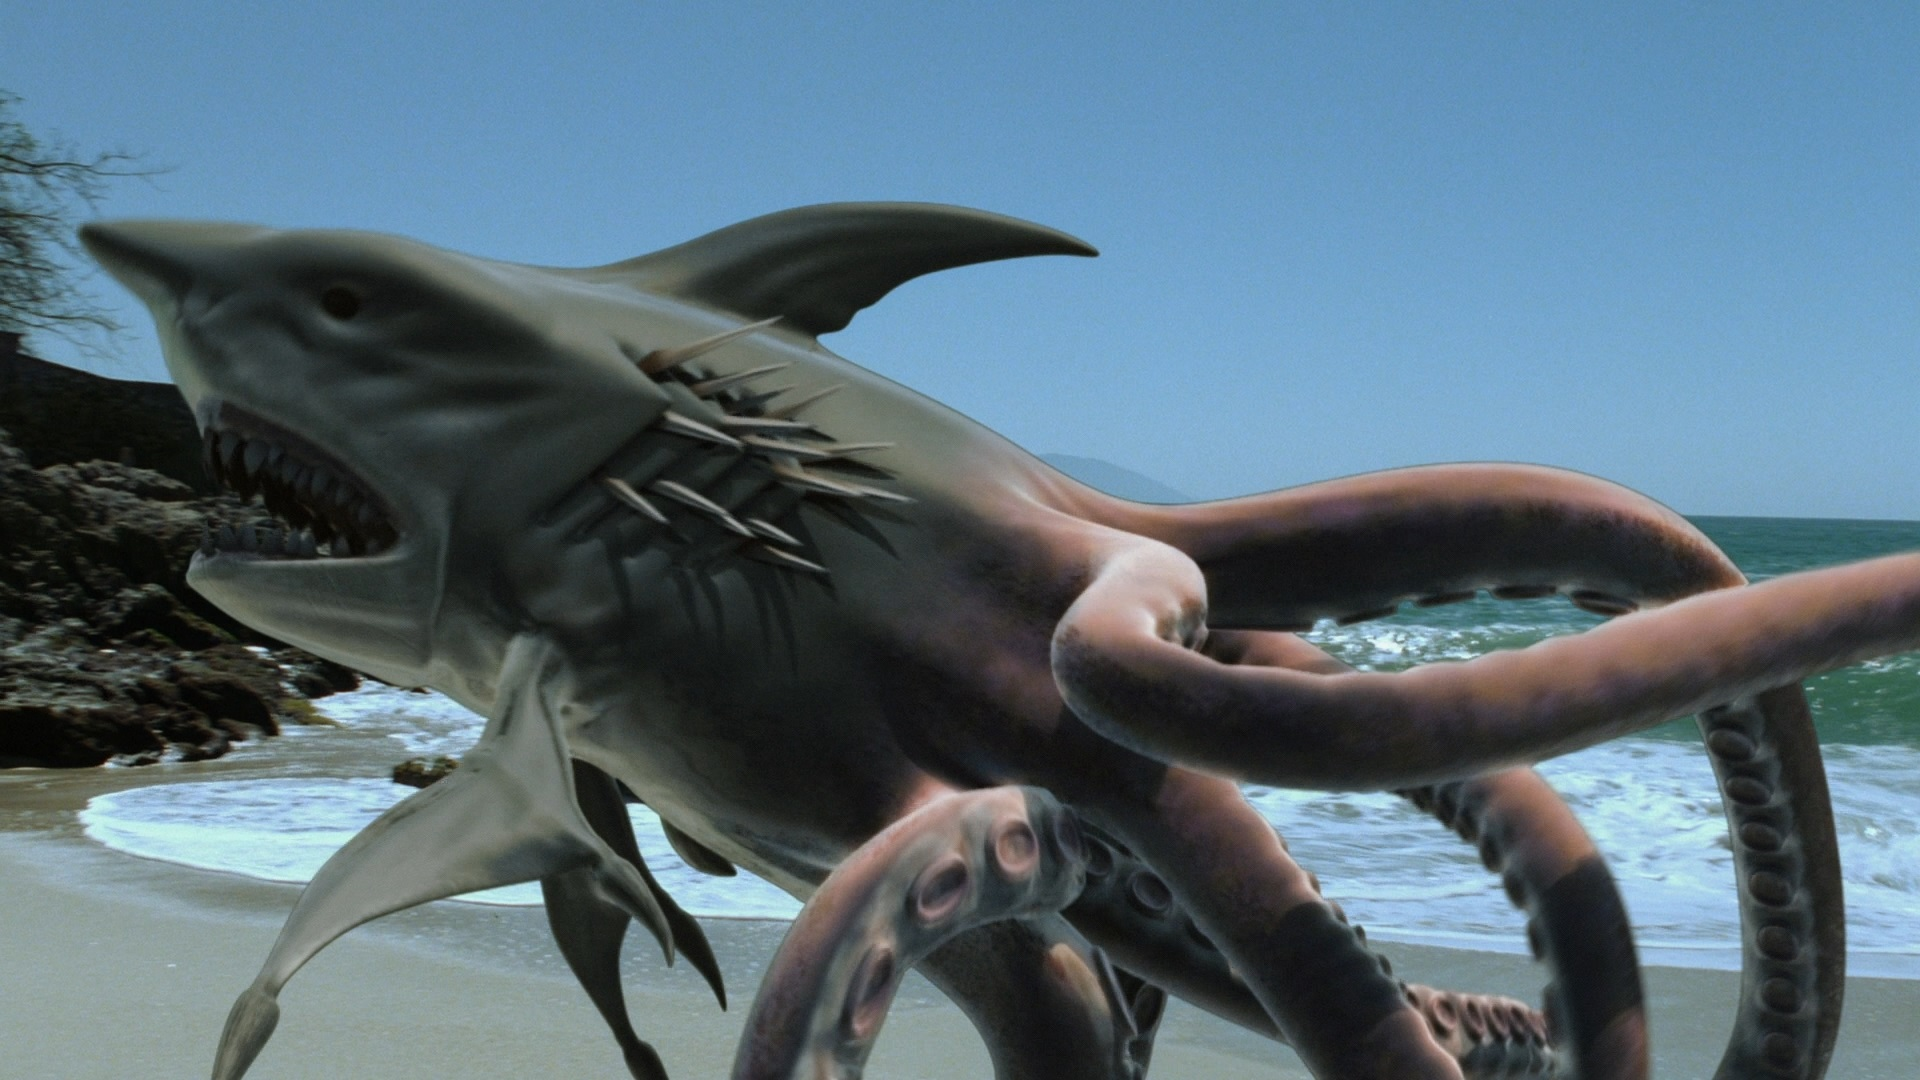 The Sharktopus, combination shark and octopus